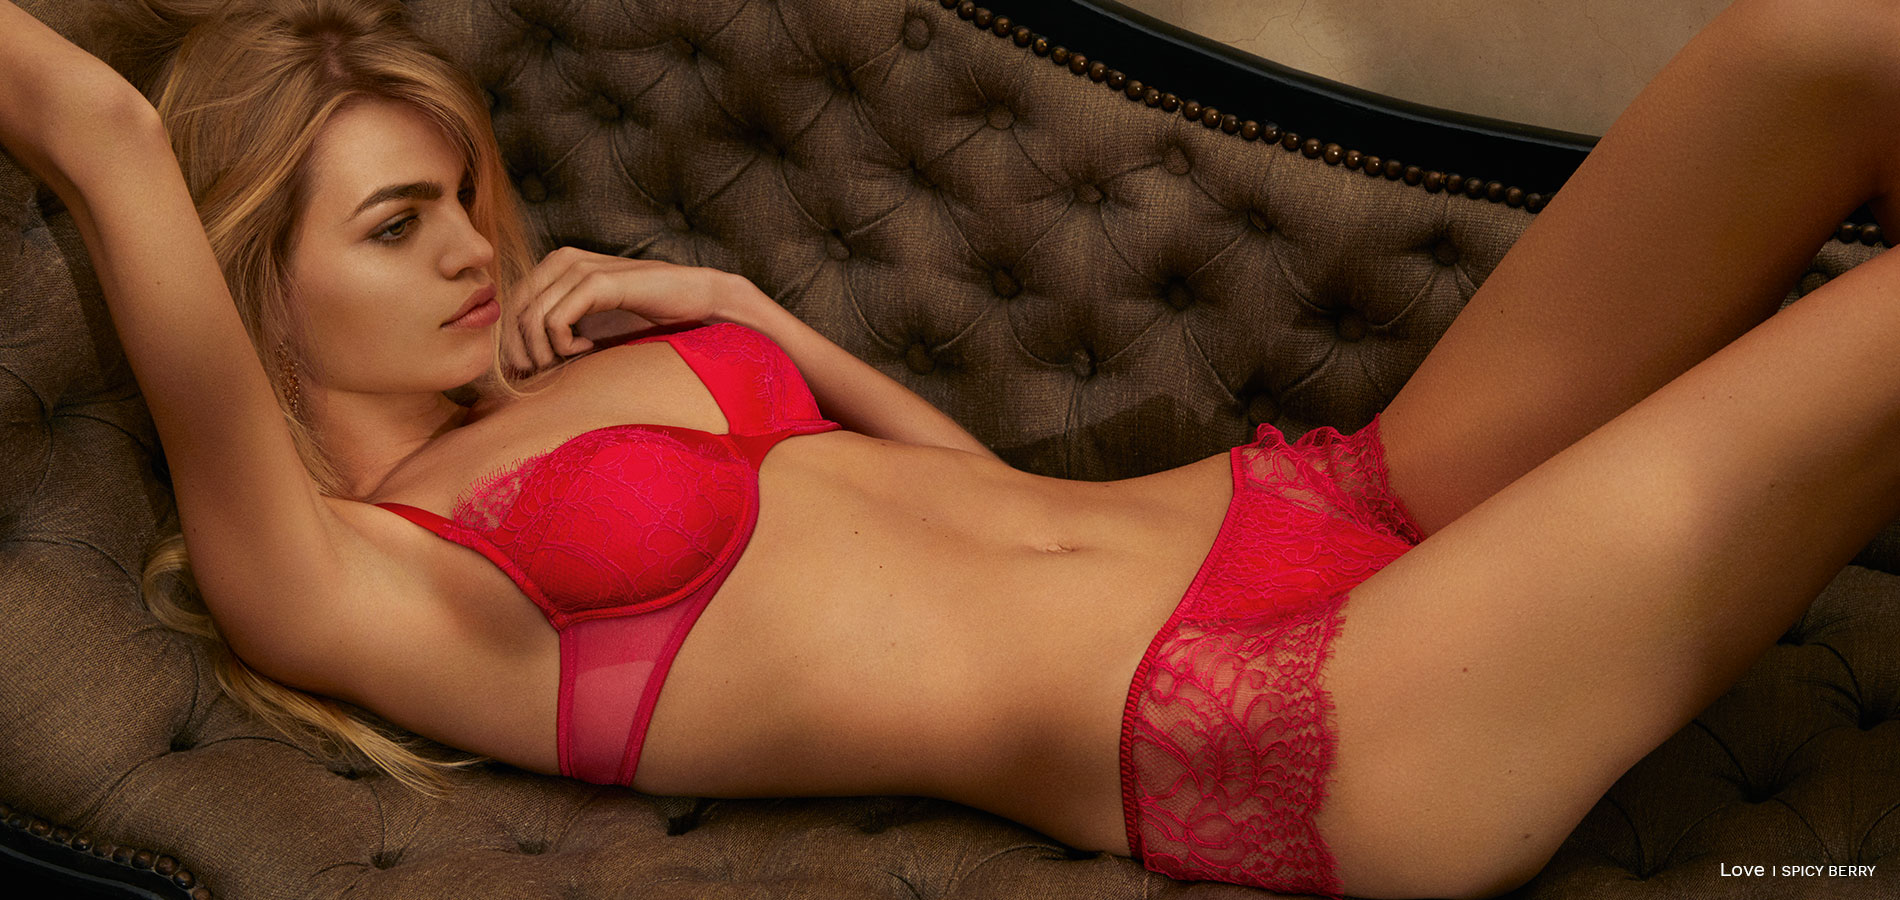 Andres Sarda | LOVE spicy berry